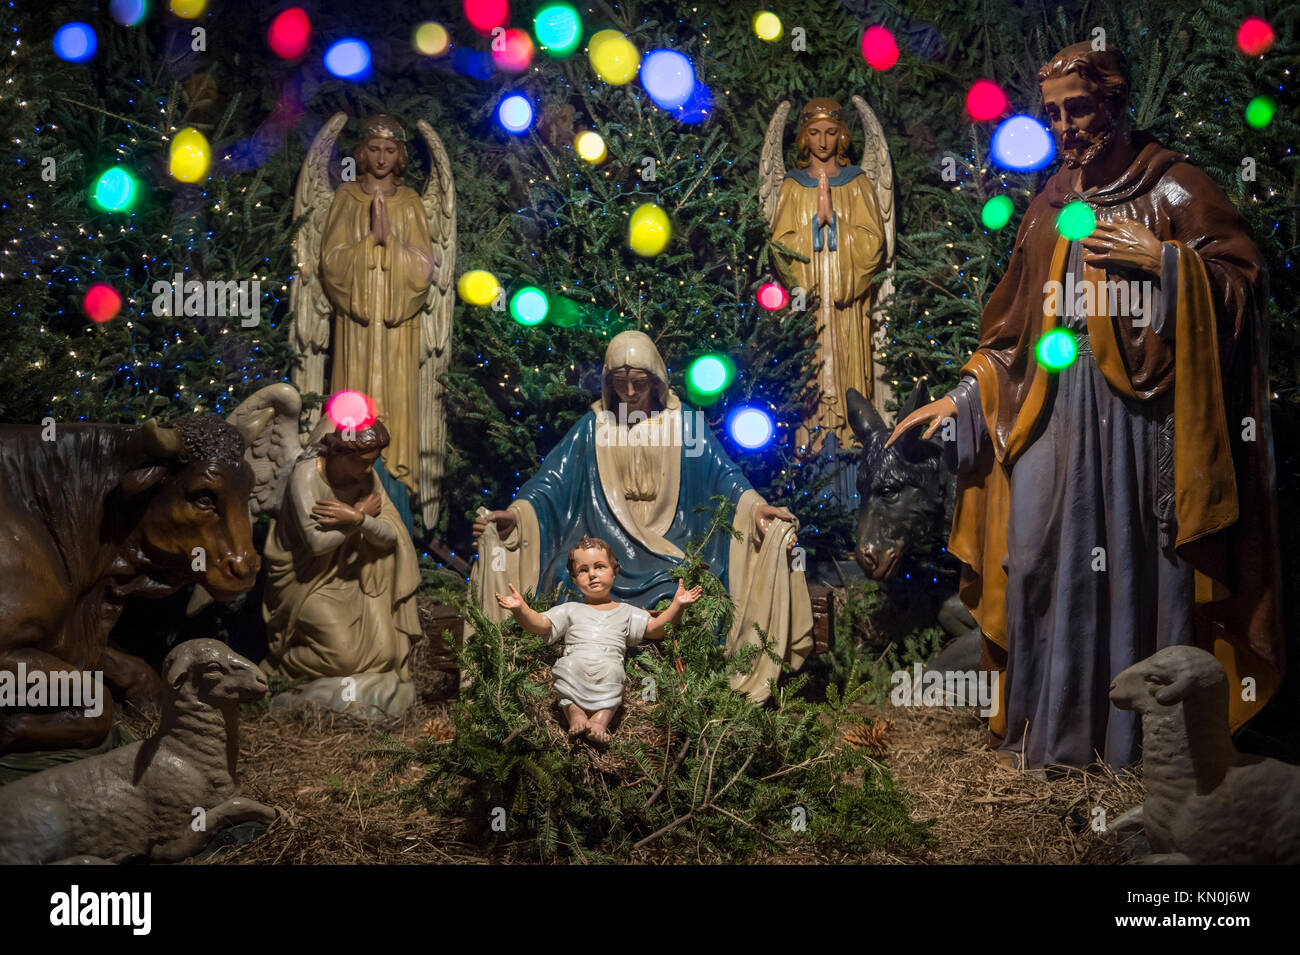 Christmas Nativity Scene With Mary Joseph The Angel Gabriel And Animals Looking Down On